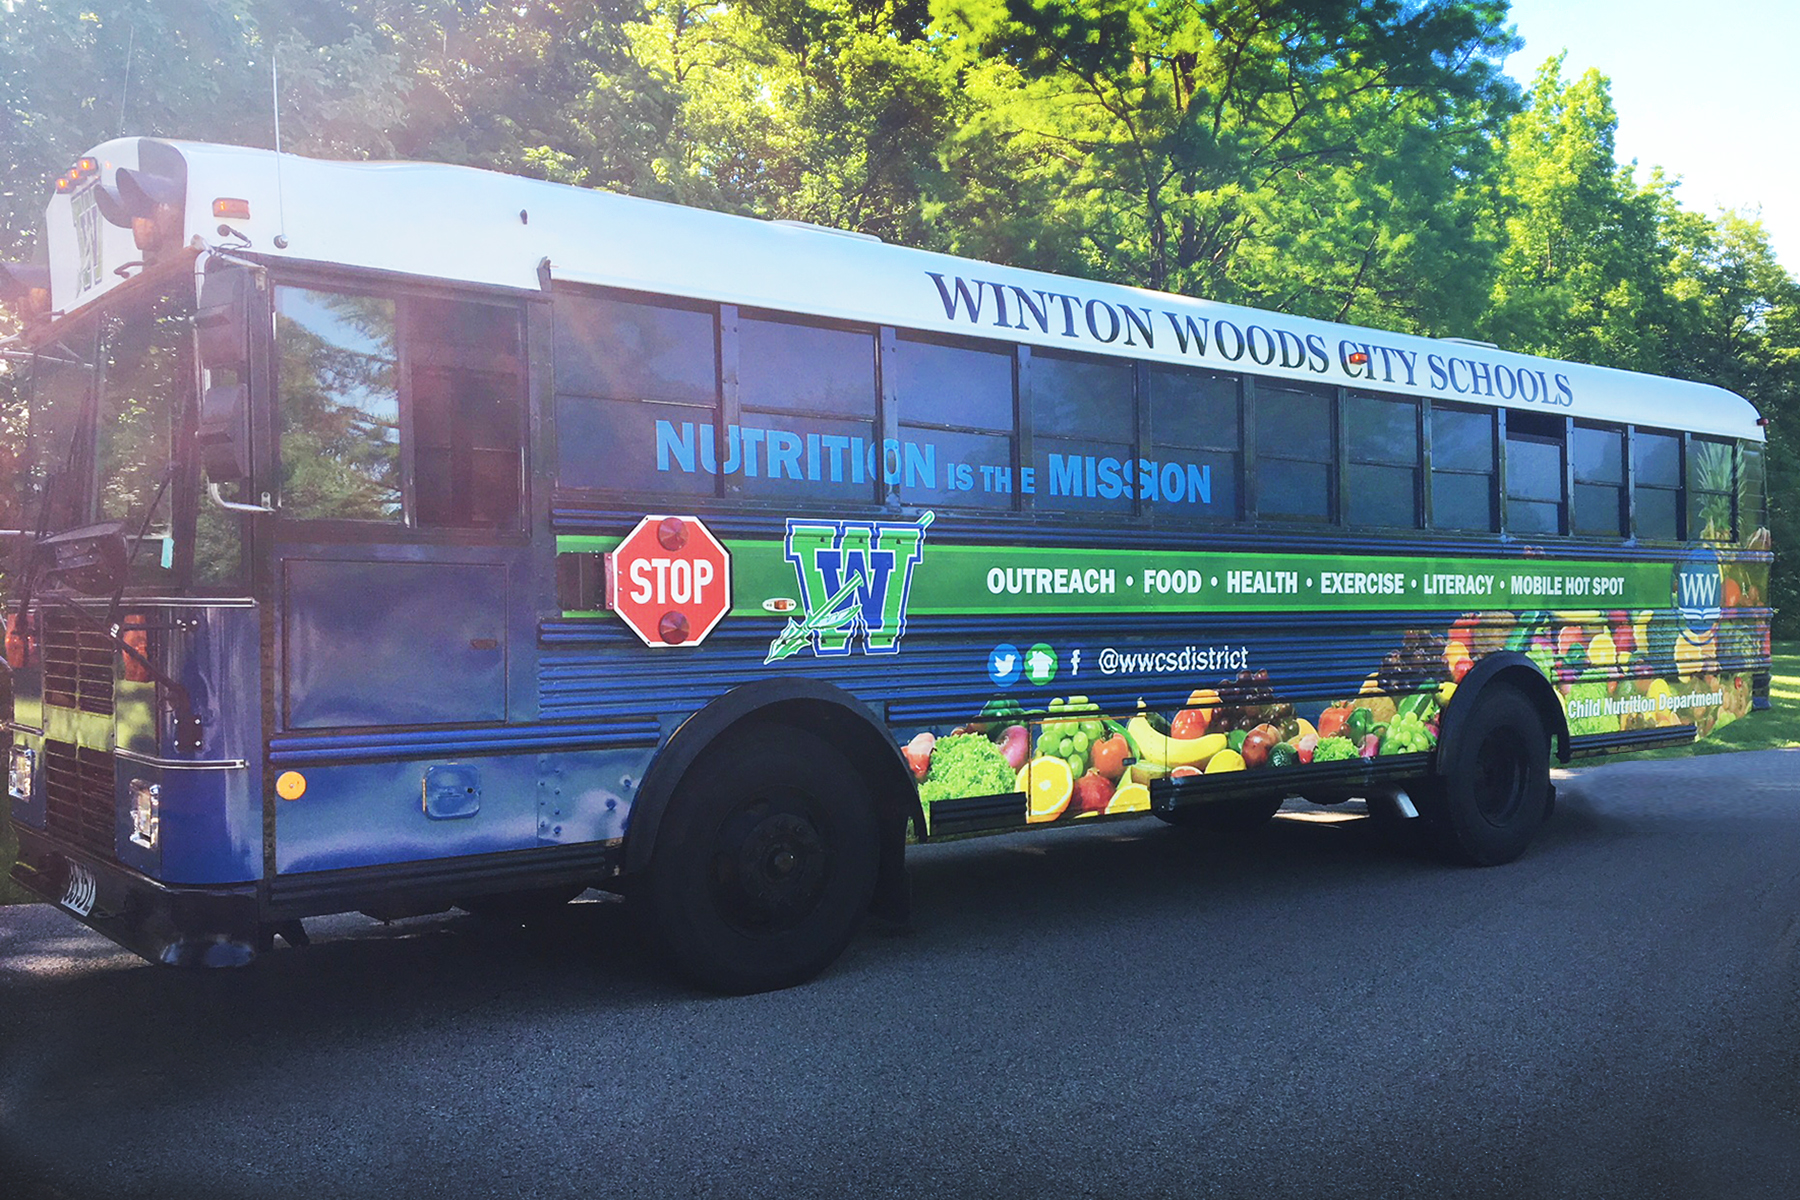 Nutrition is the mission bus